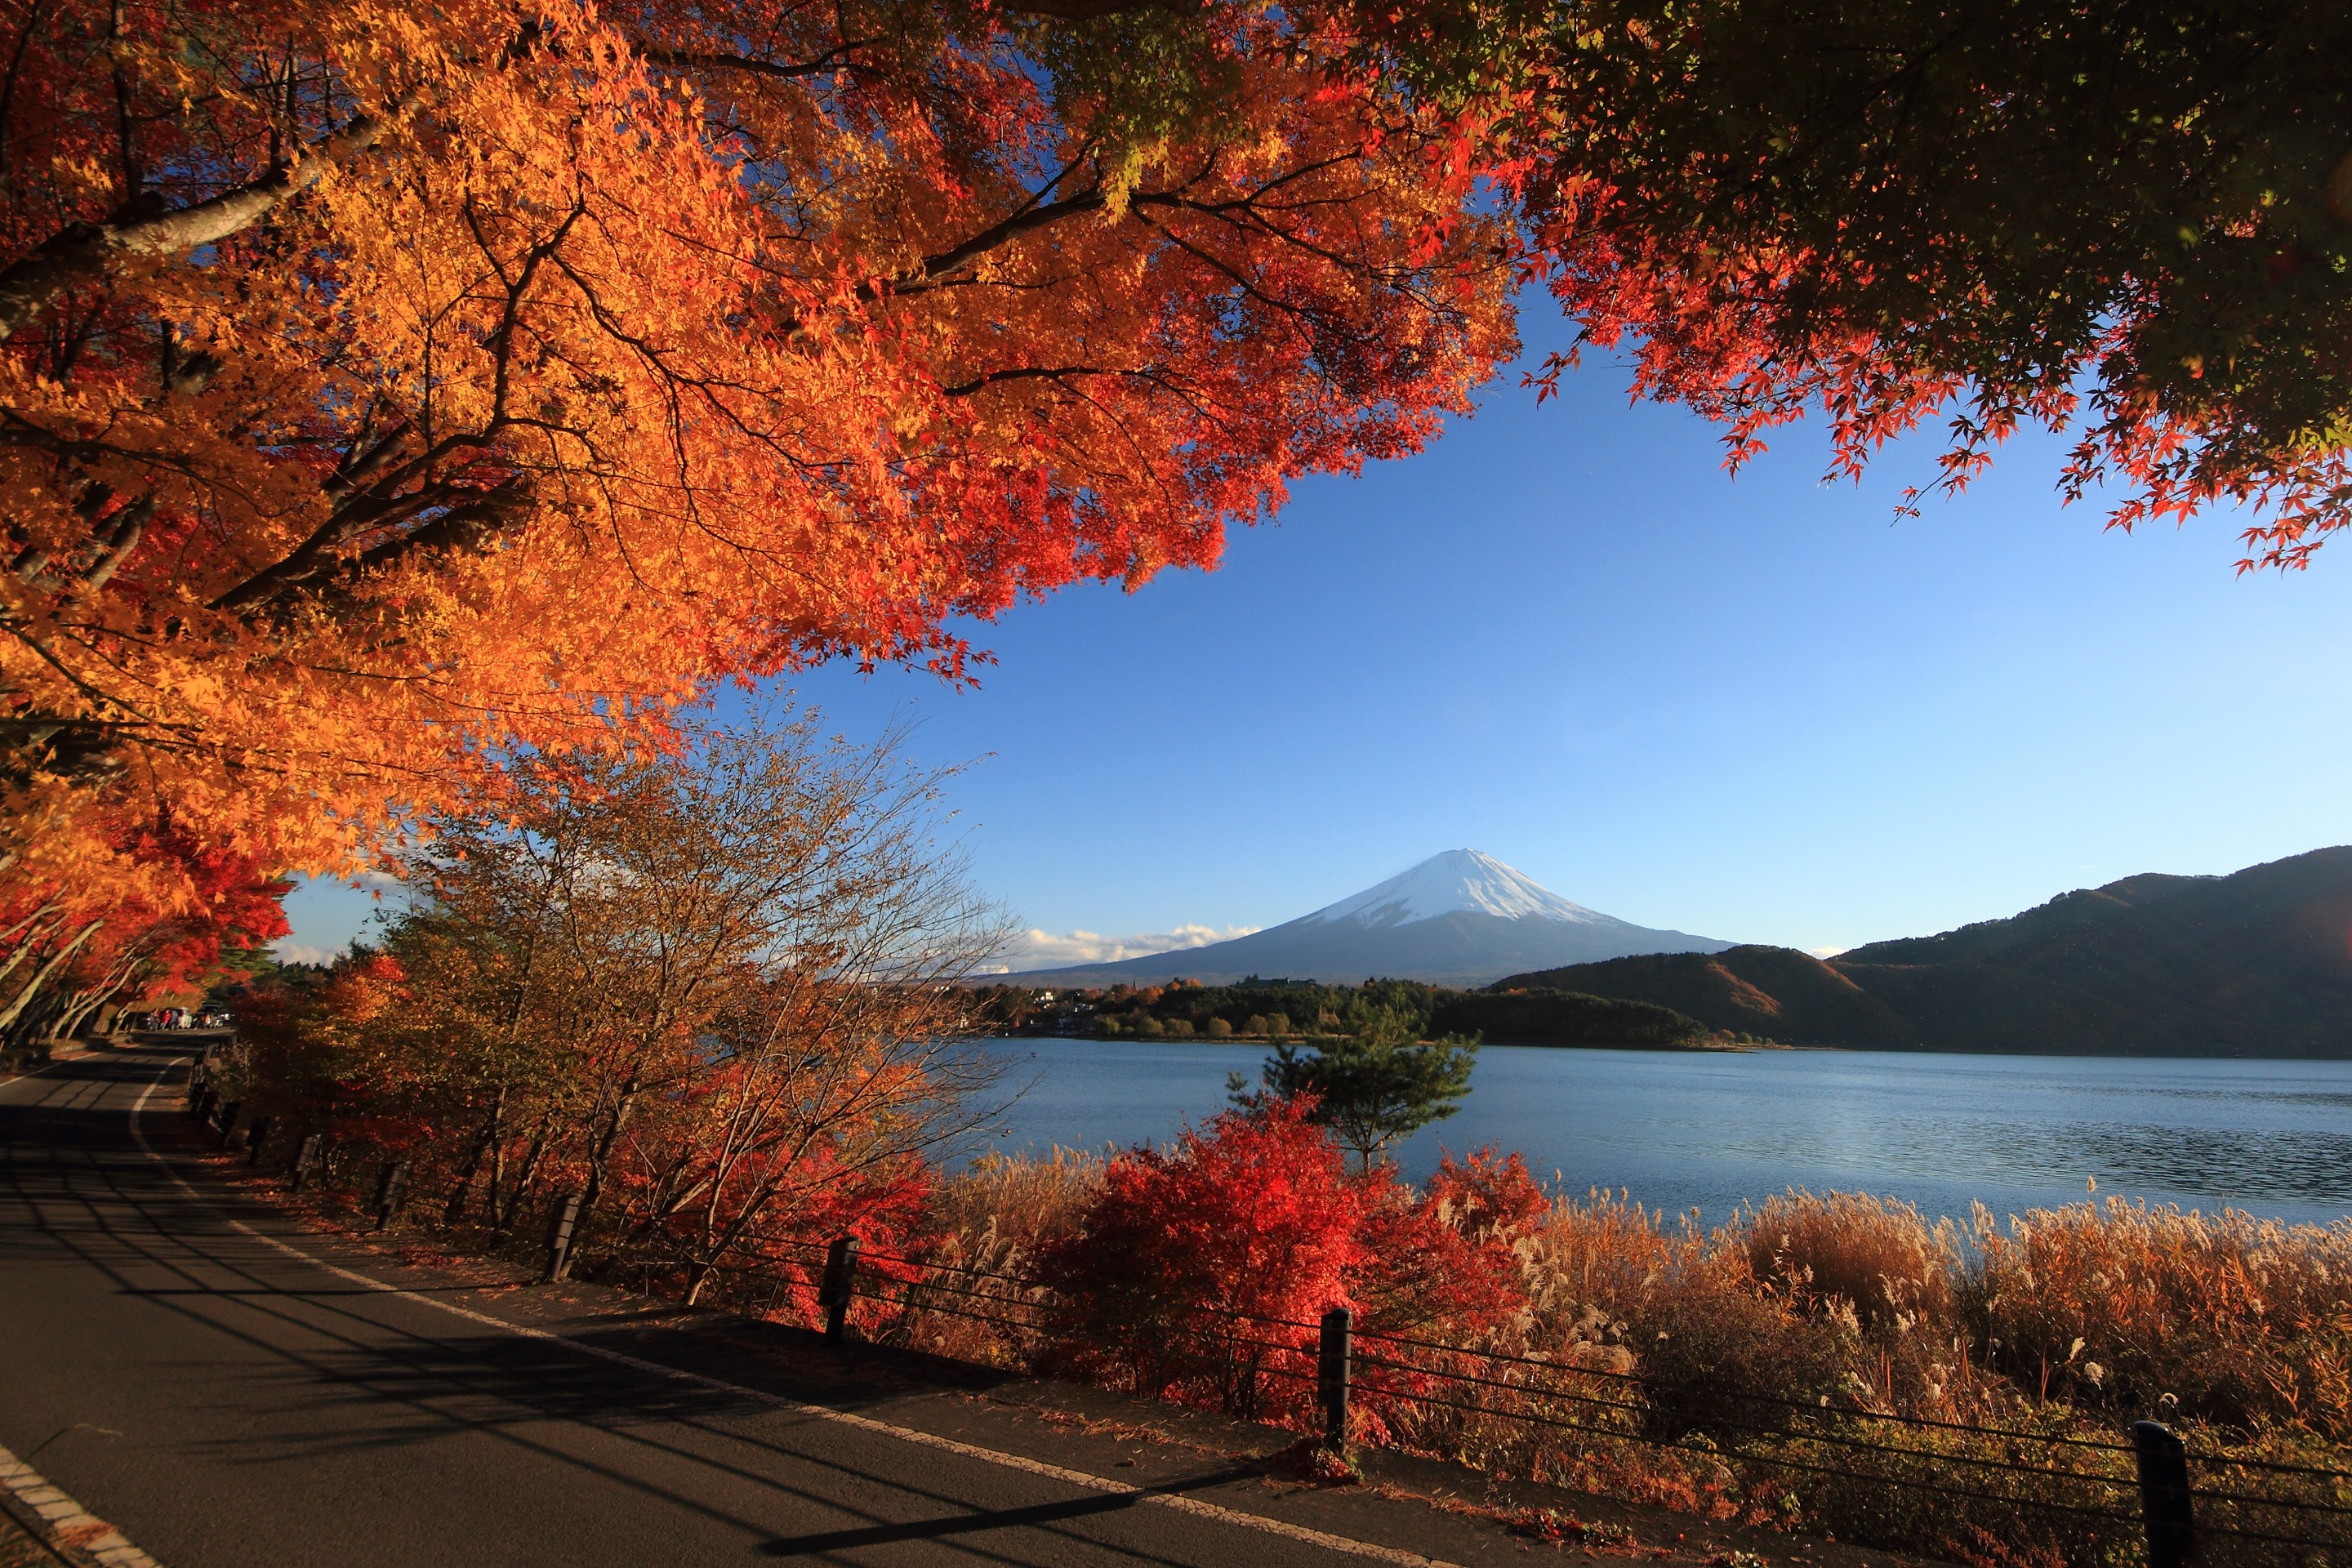 Lakes: Lakeside Autumn Color Road Water Trees Fall Red Leaves Lake ...